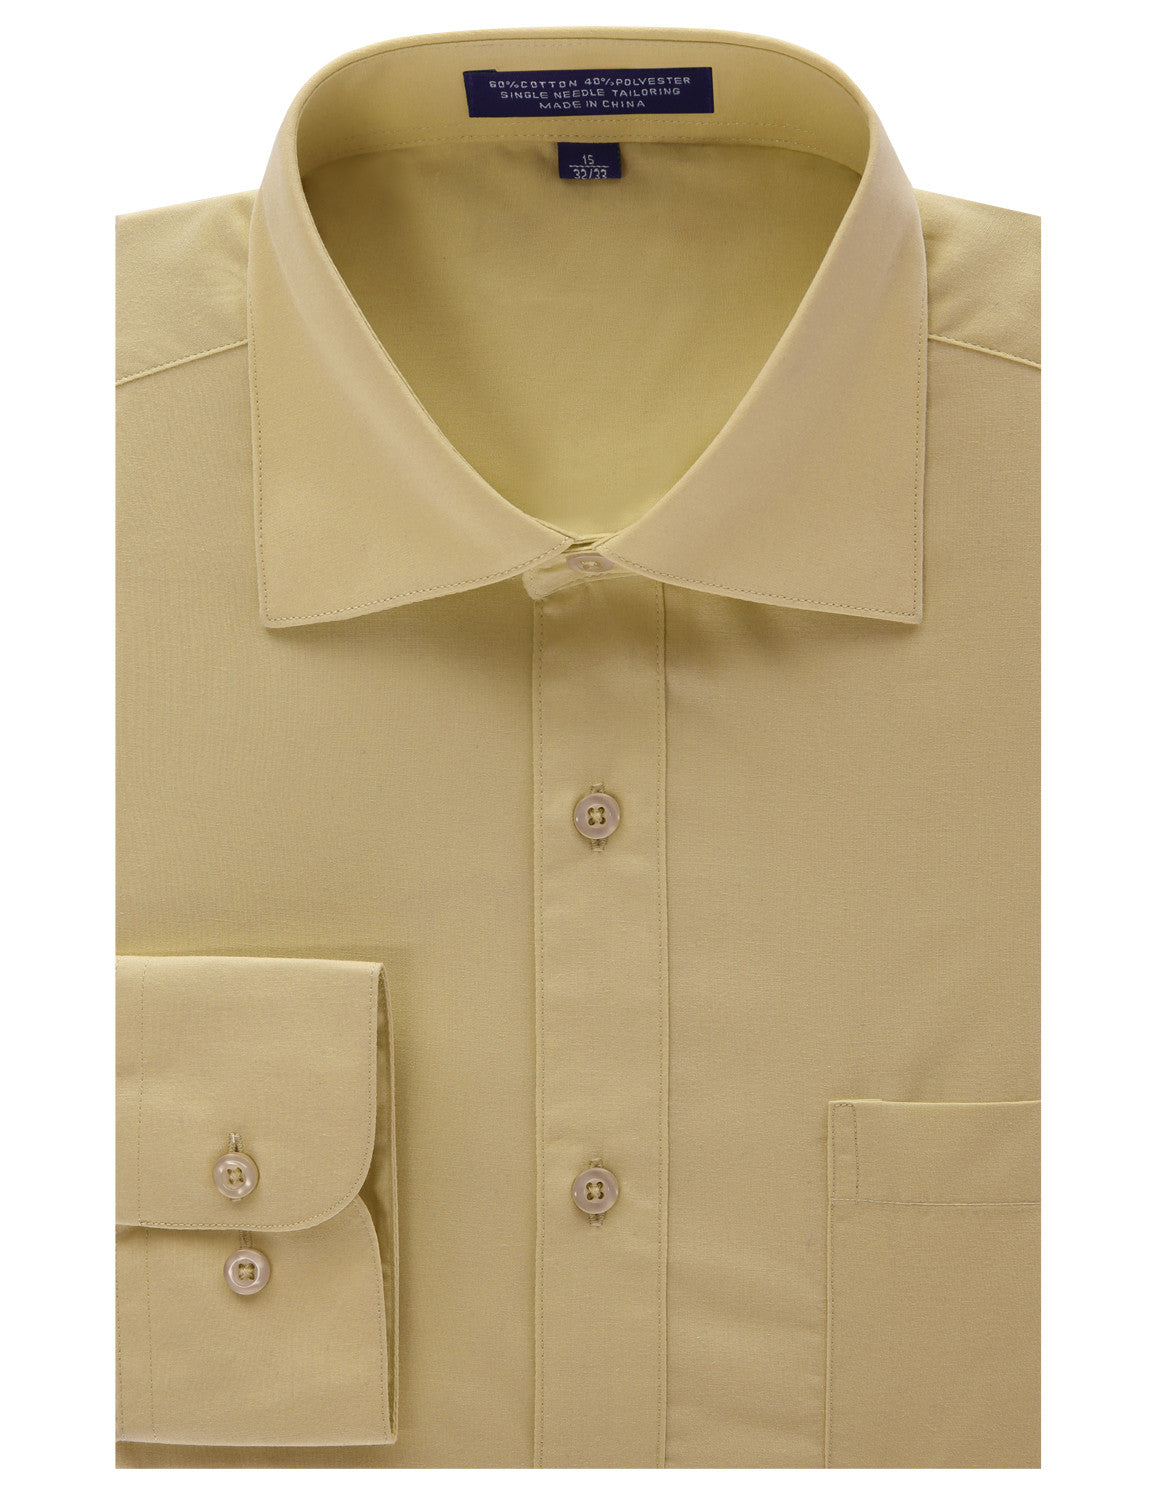 TAN Regular Fit Dress Shirt w/ Reversible Cuff (Big & Tall Available)- MONDAYSUIT